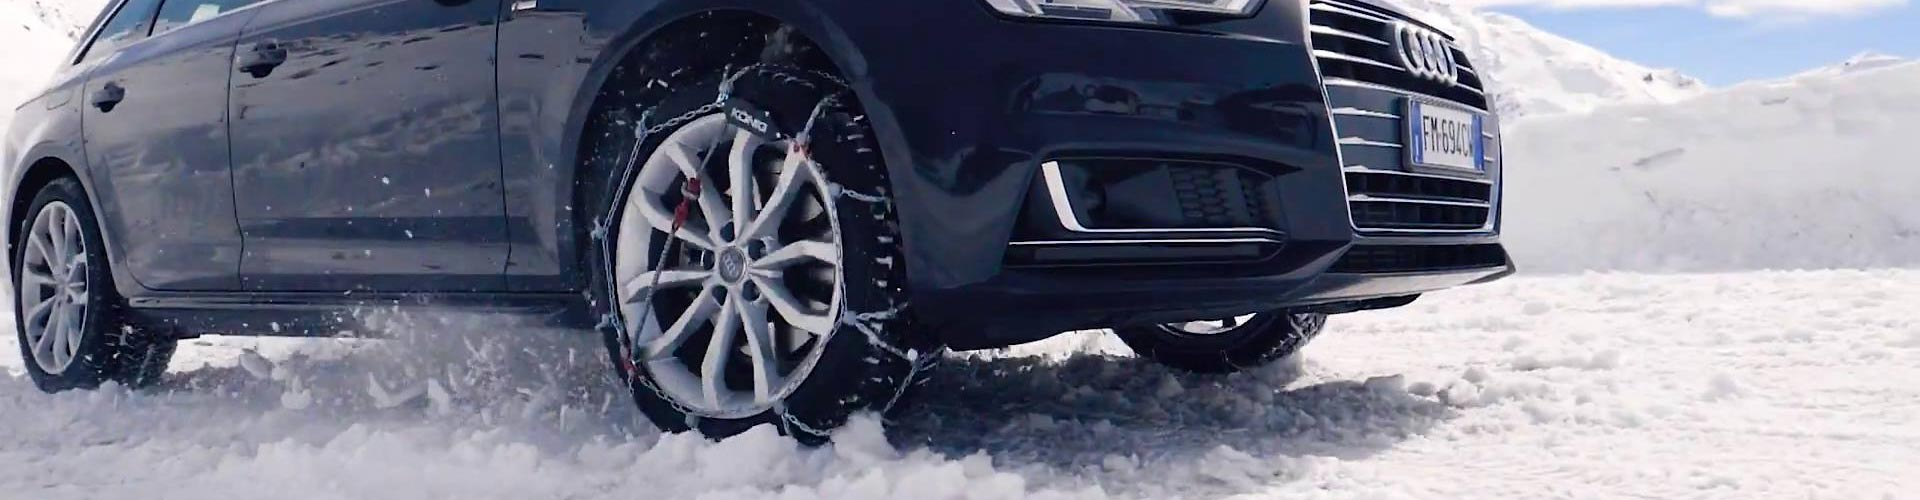 konig snow chain fitted to Audi front wheel in snow